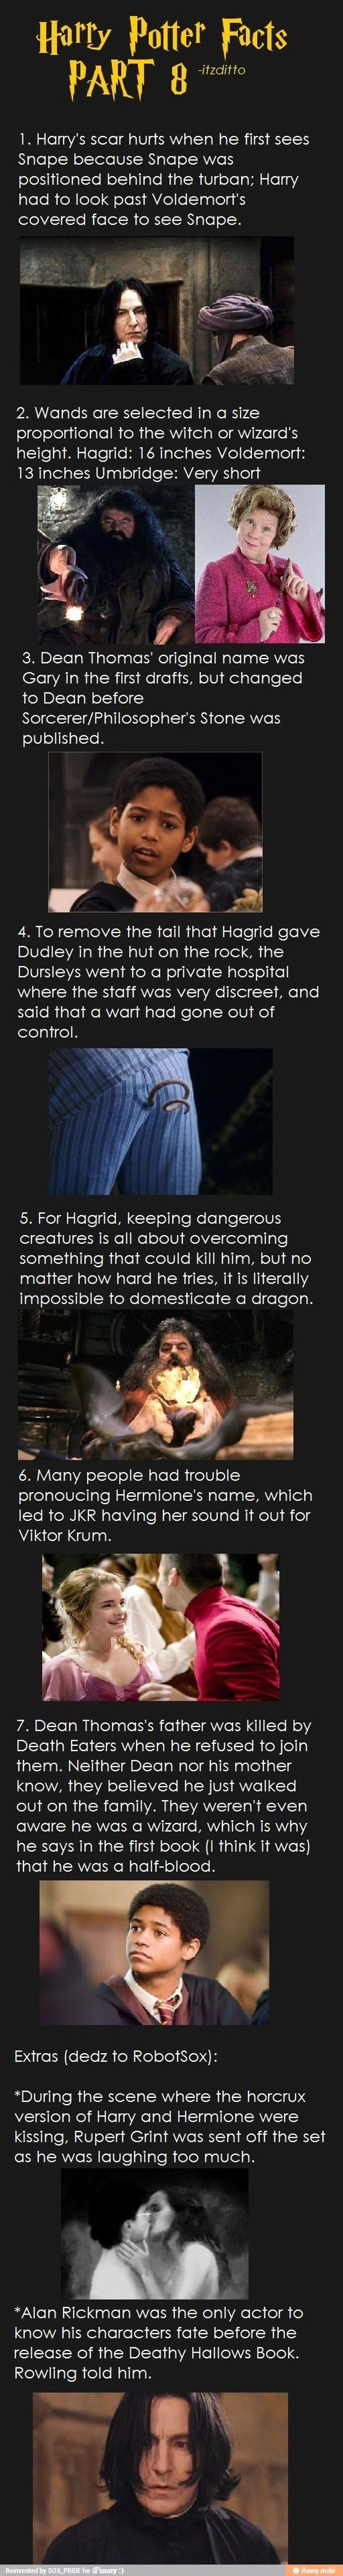 Harry potter: true or false, it is all intriguing